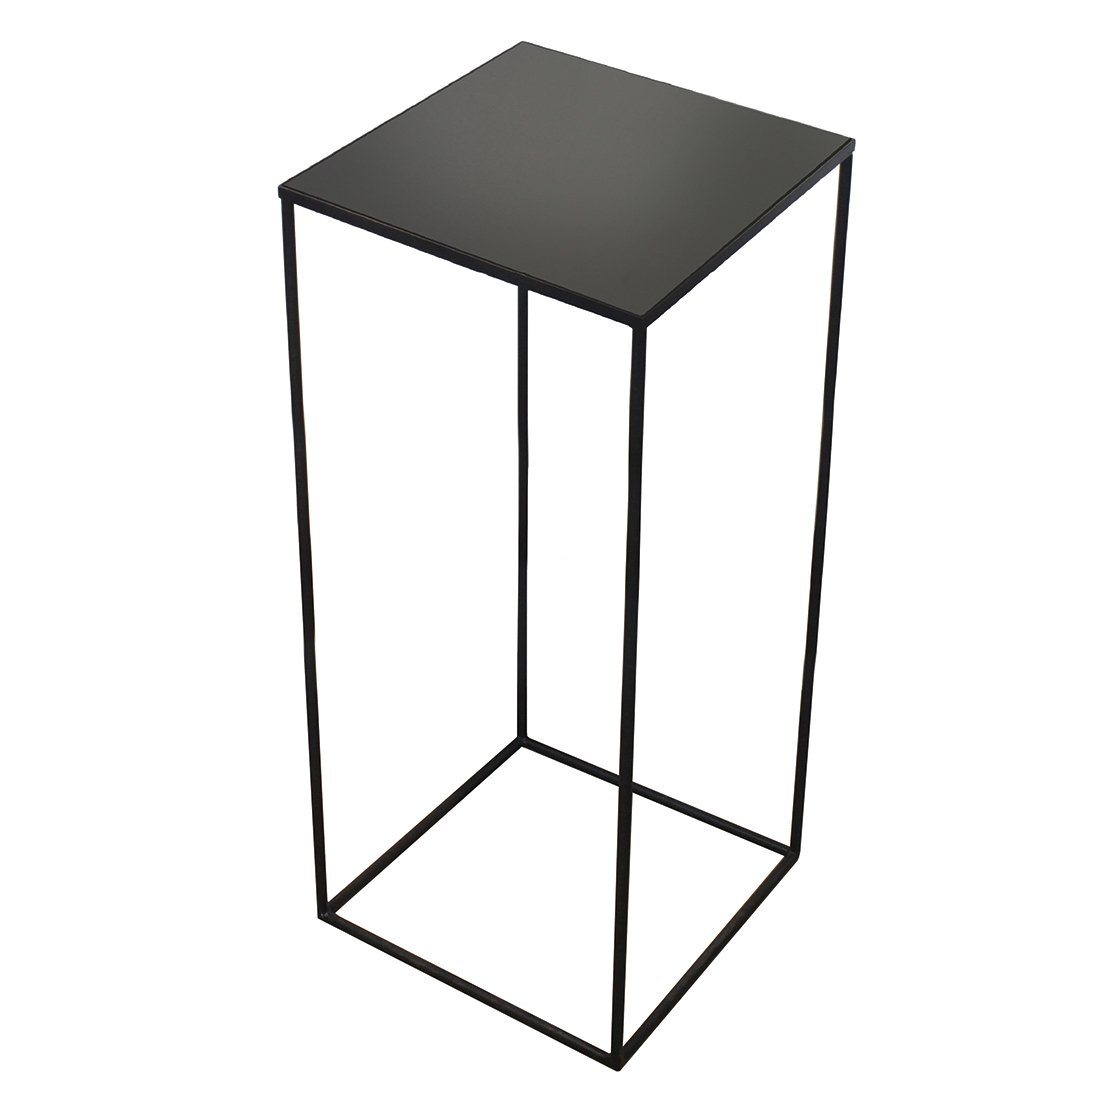 Ethnicraft Square Side Table Charcoal Mirror Large - Heigh